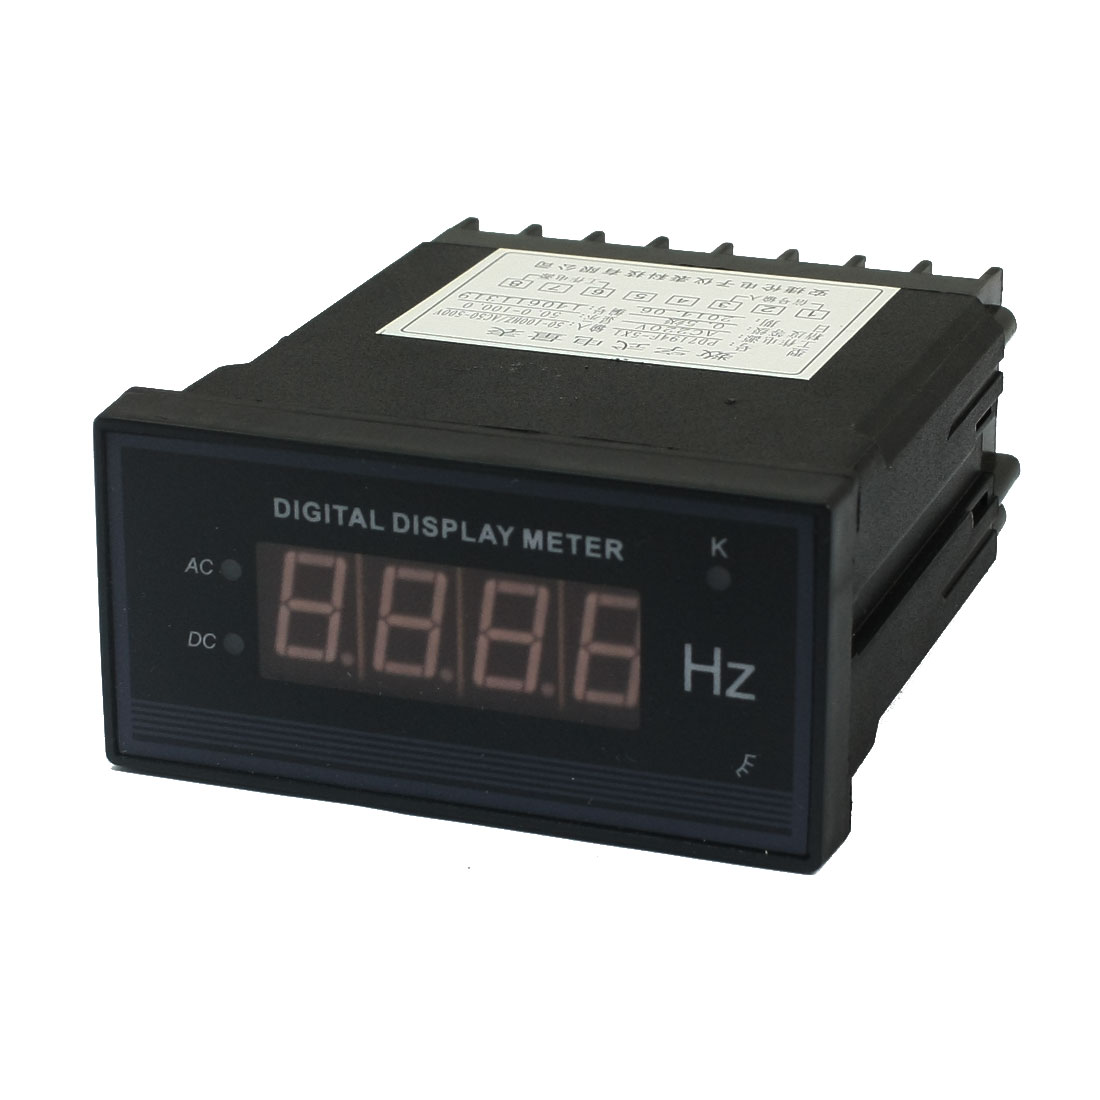 AC220V 50.0-100.0 Testing Range 8 Screw Terminals Programmable Panel Mount 3.5 Bits LED Digital Display Meter